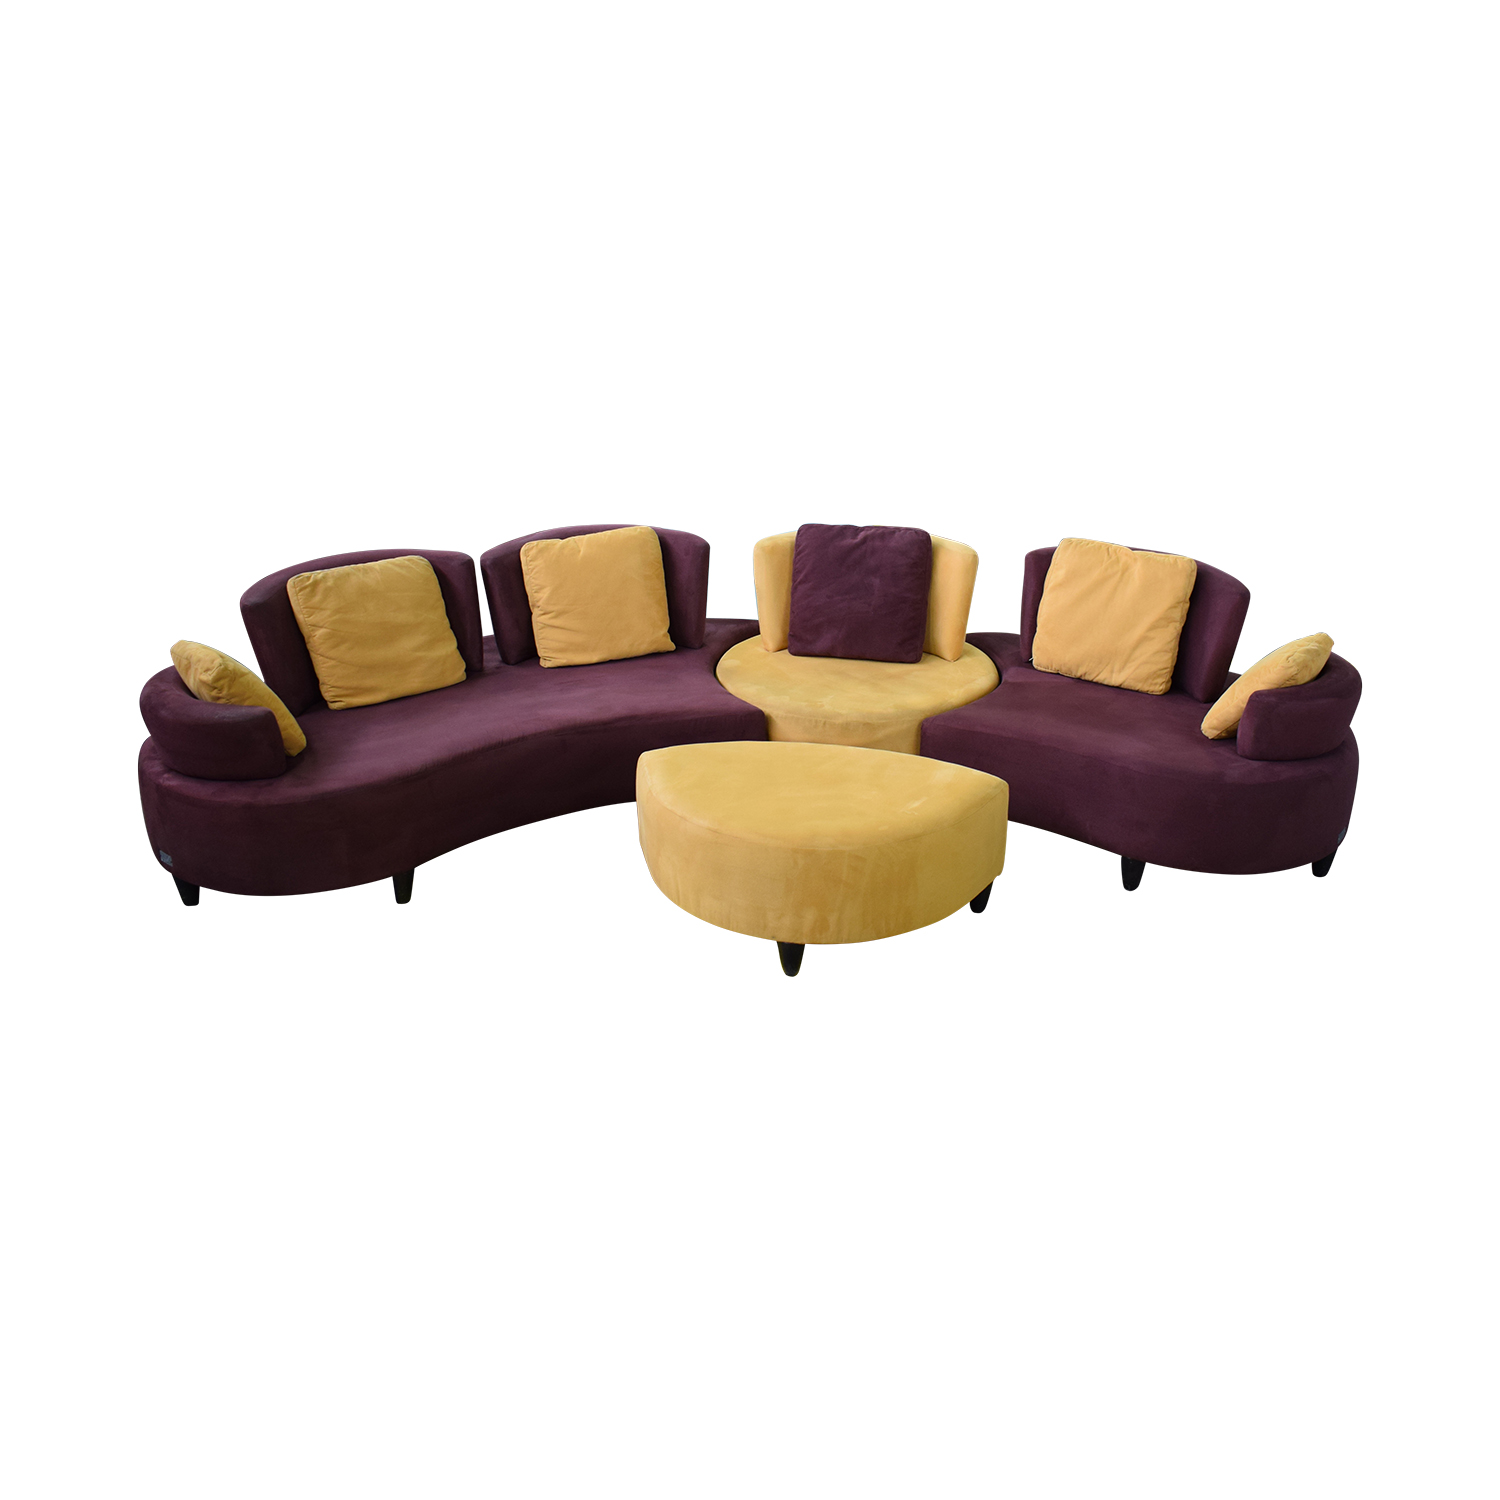 Normand Couture Design Cameleon Sectional Sofa / Sofas